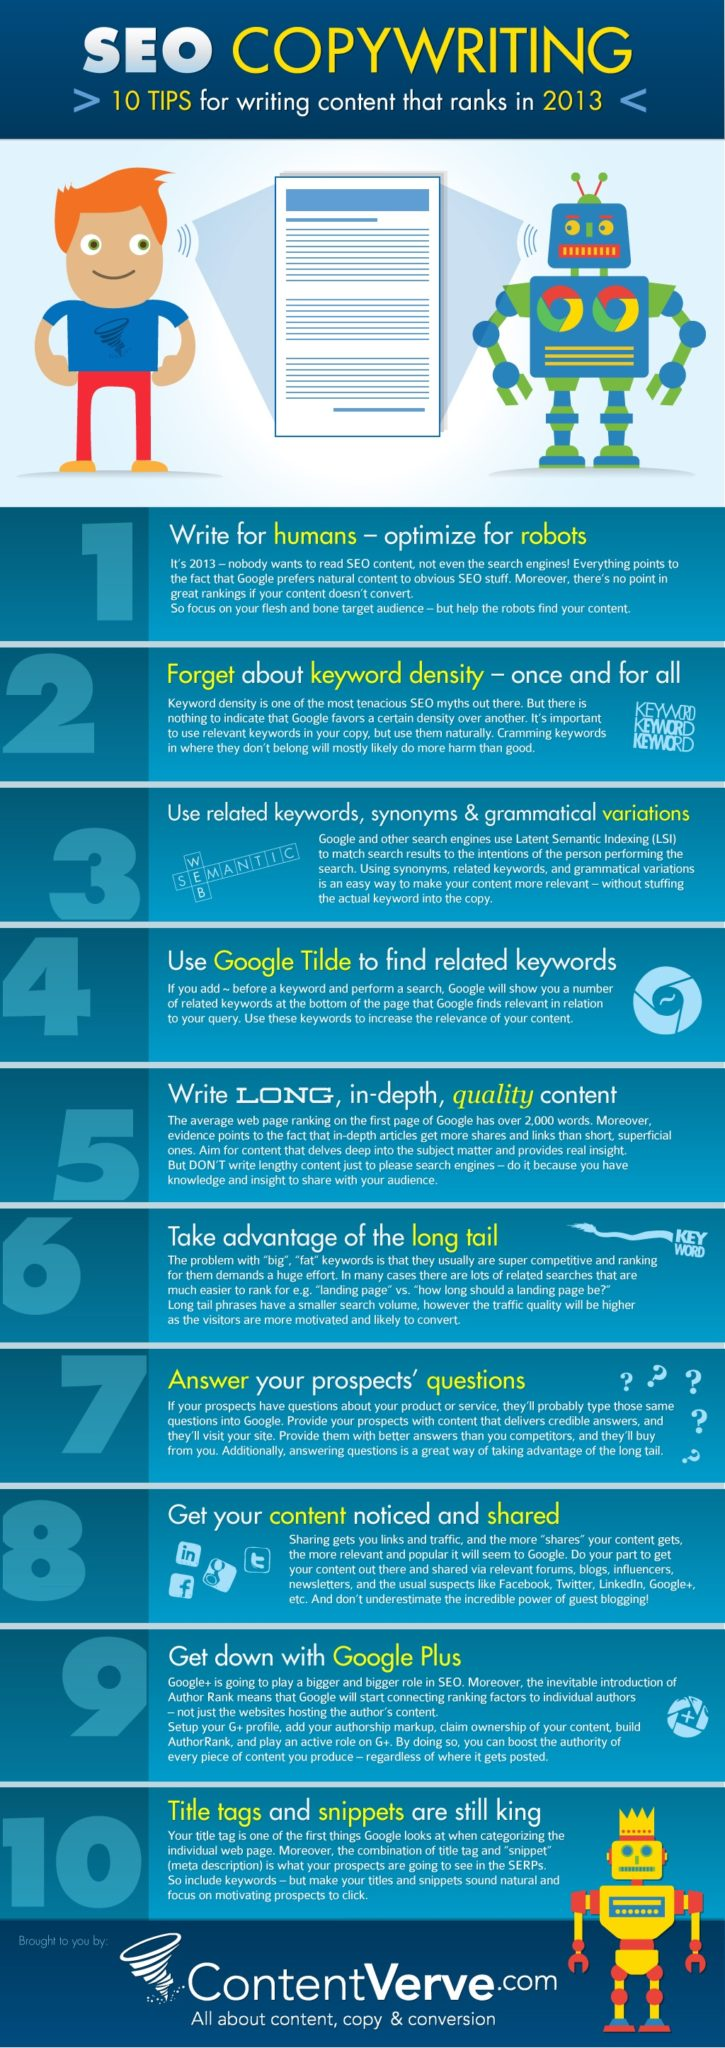 SEO Copywriting 10 tips for writing content